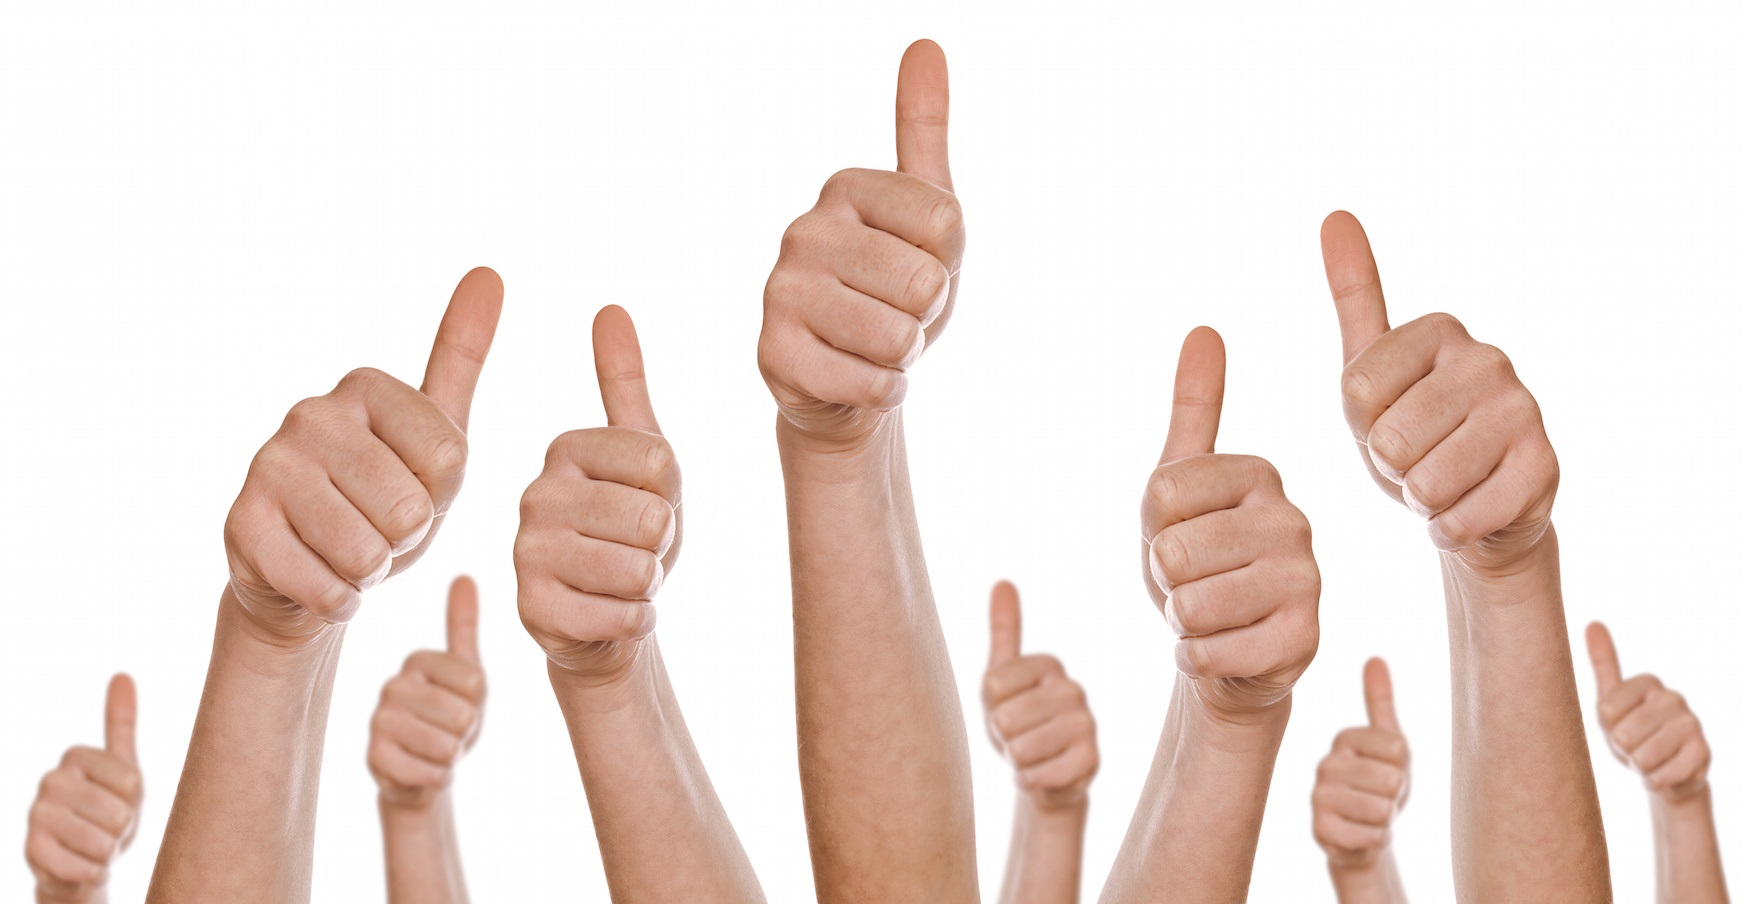 Thumbs-Up-1-copy.jpg